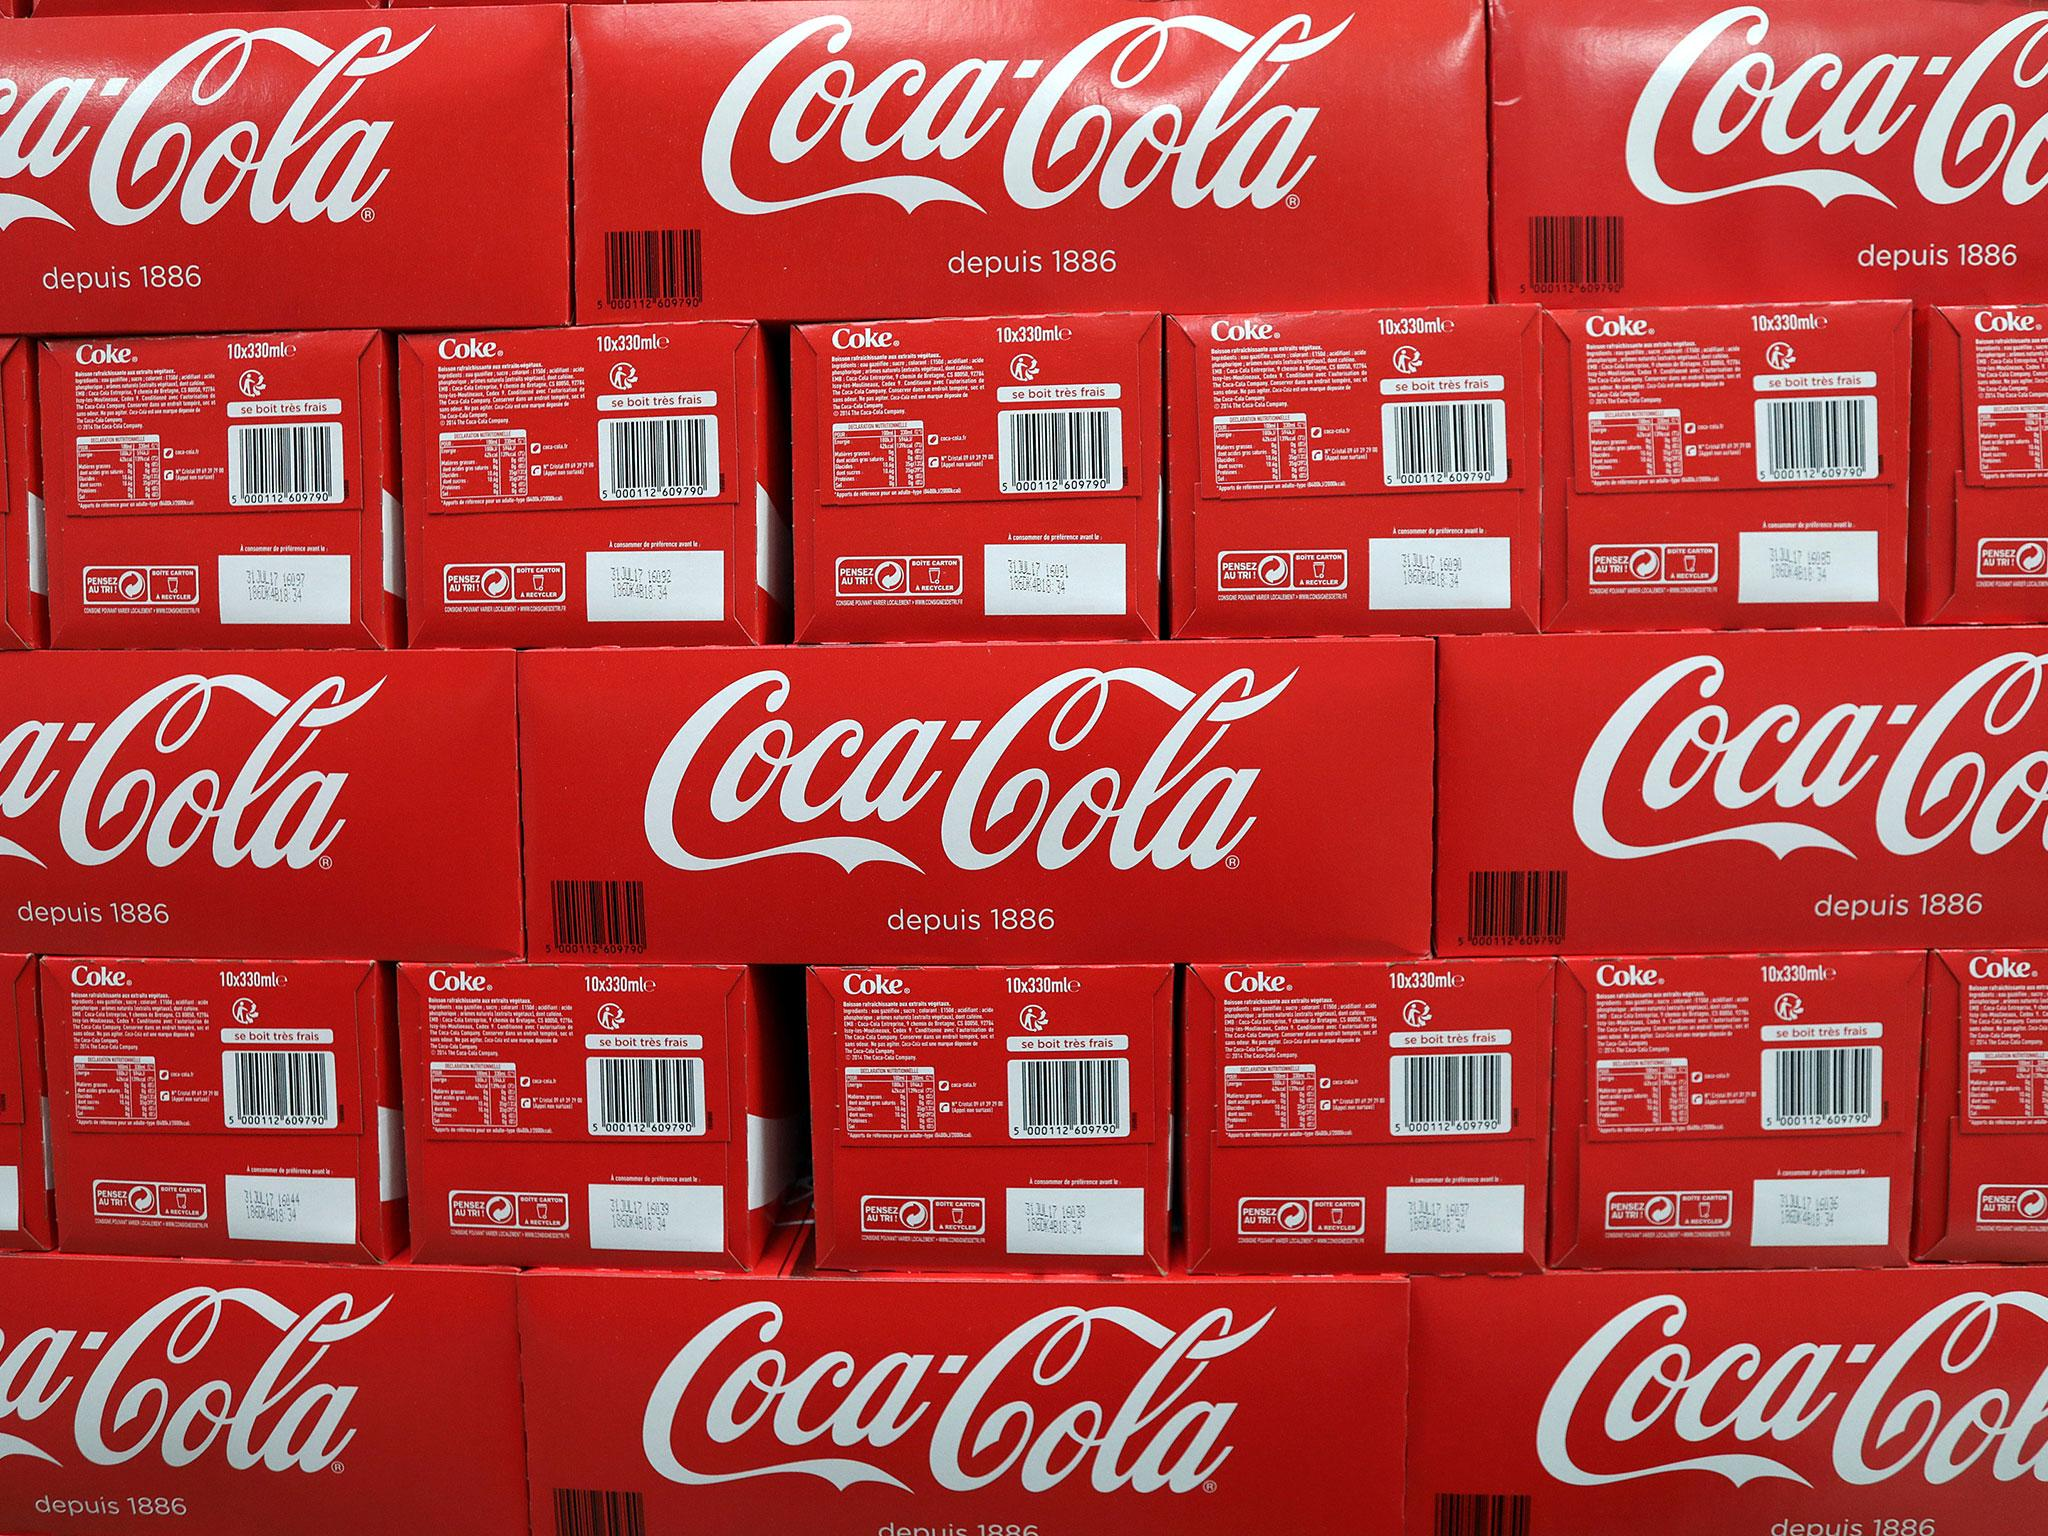 coca cola s line of business The coca-cola company (nyse: ko) the bottom-line result was in line with analyst expectations nearly all of coca-cola's geographic business segments reported positive year-over-year sales growth.